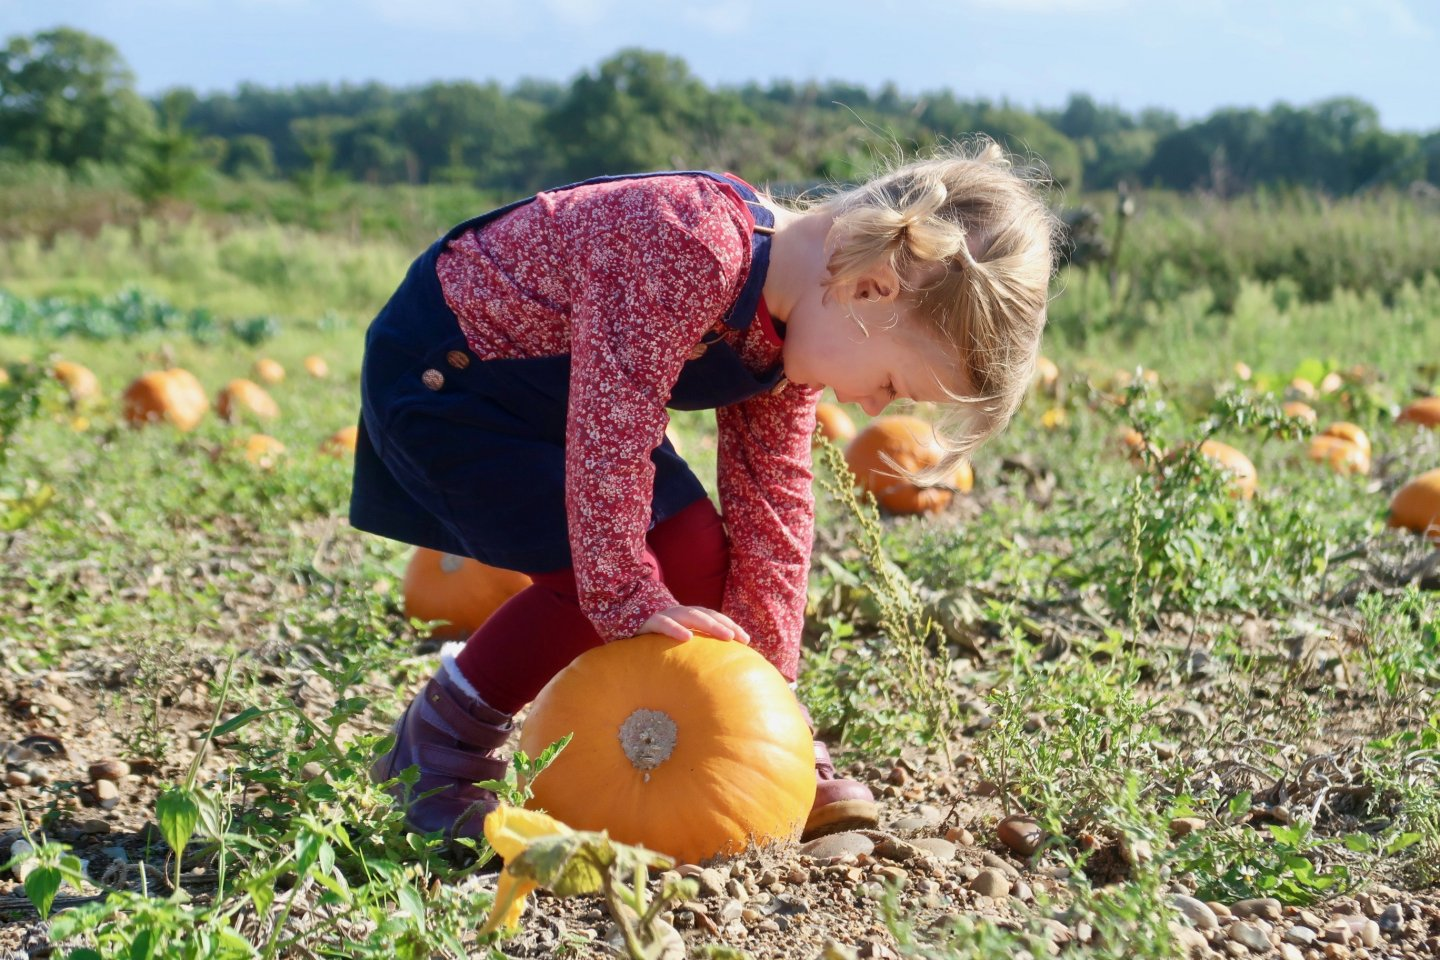 M bending down to look at a pumpkin at the pumpkin patch, Norfolk.